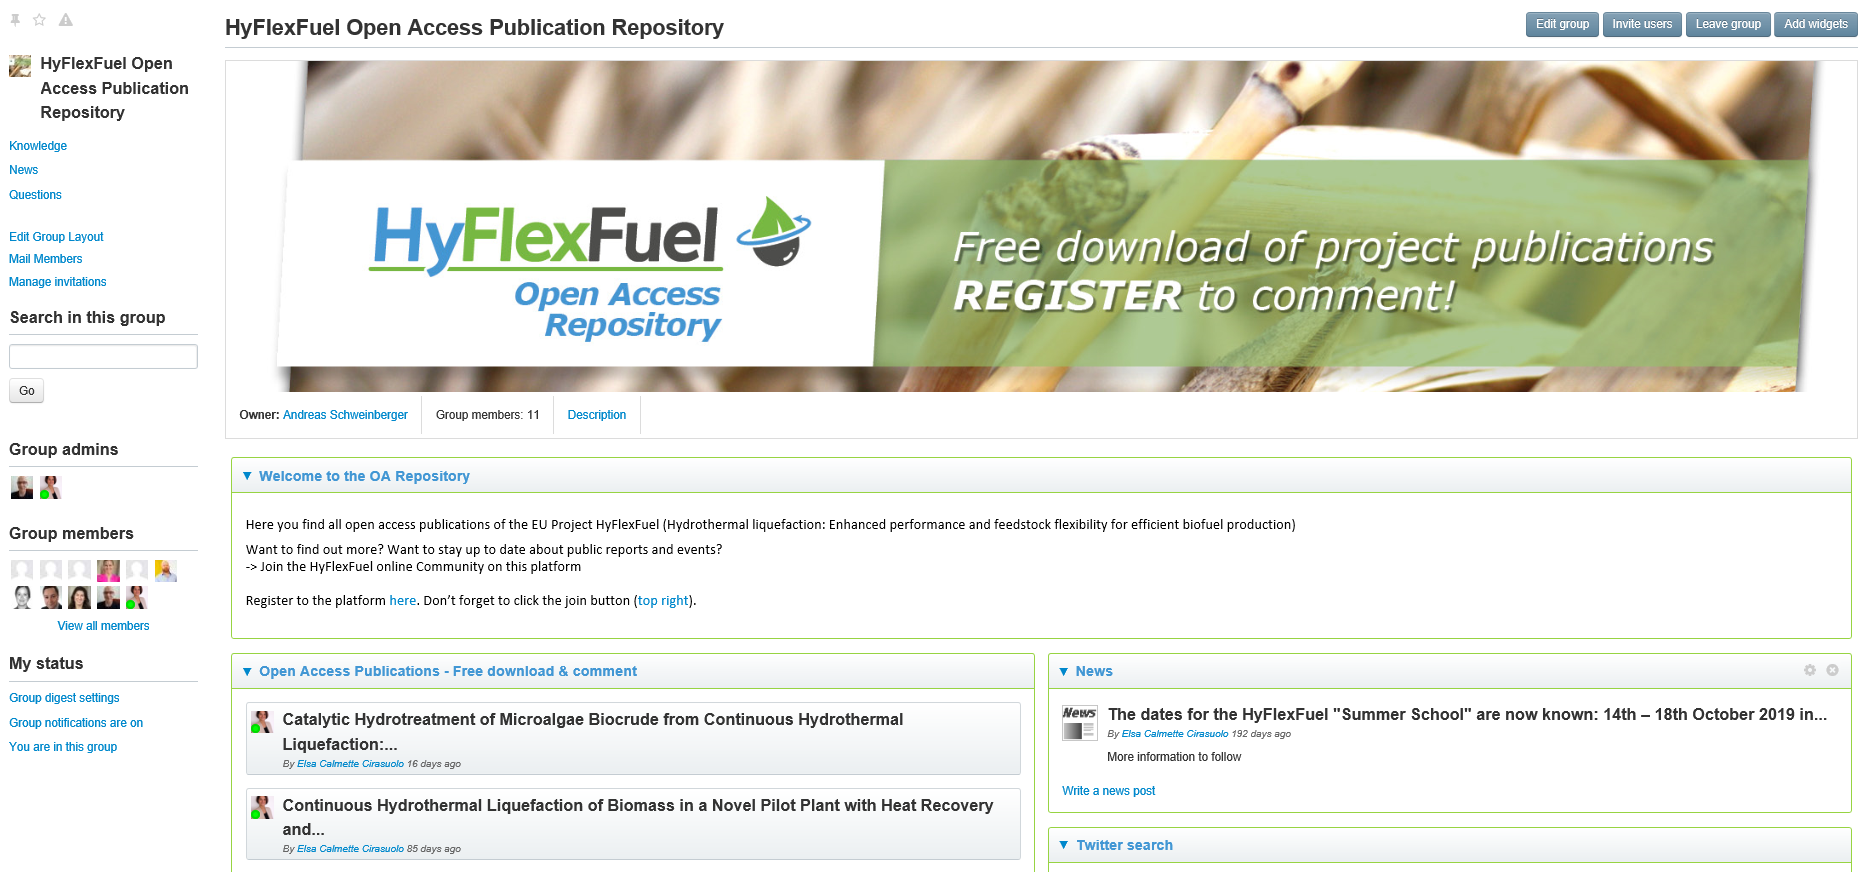 HyFlexFuel CMT open access repository